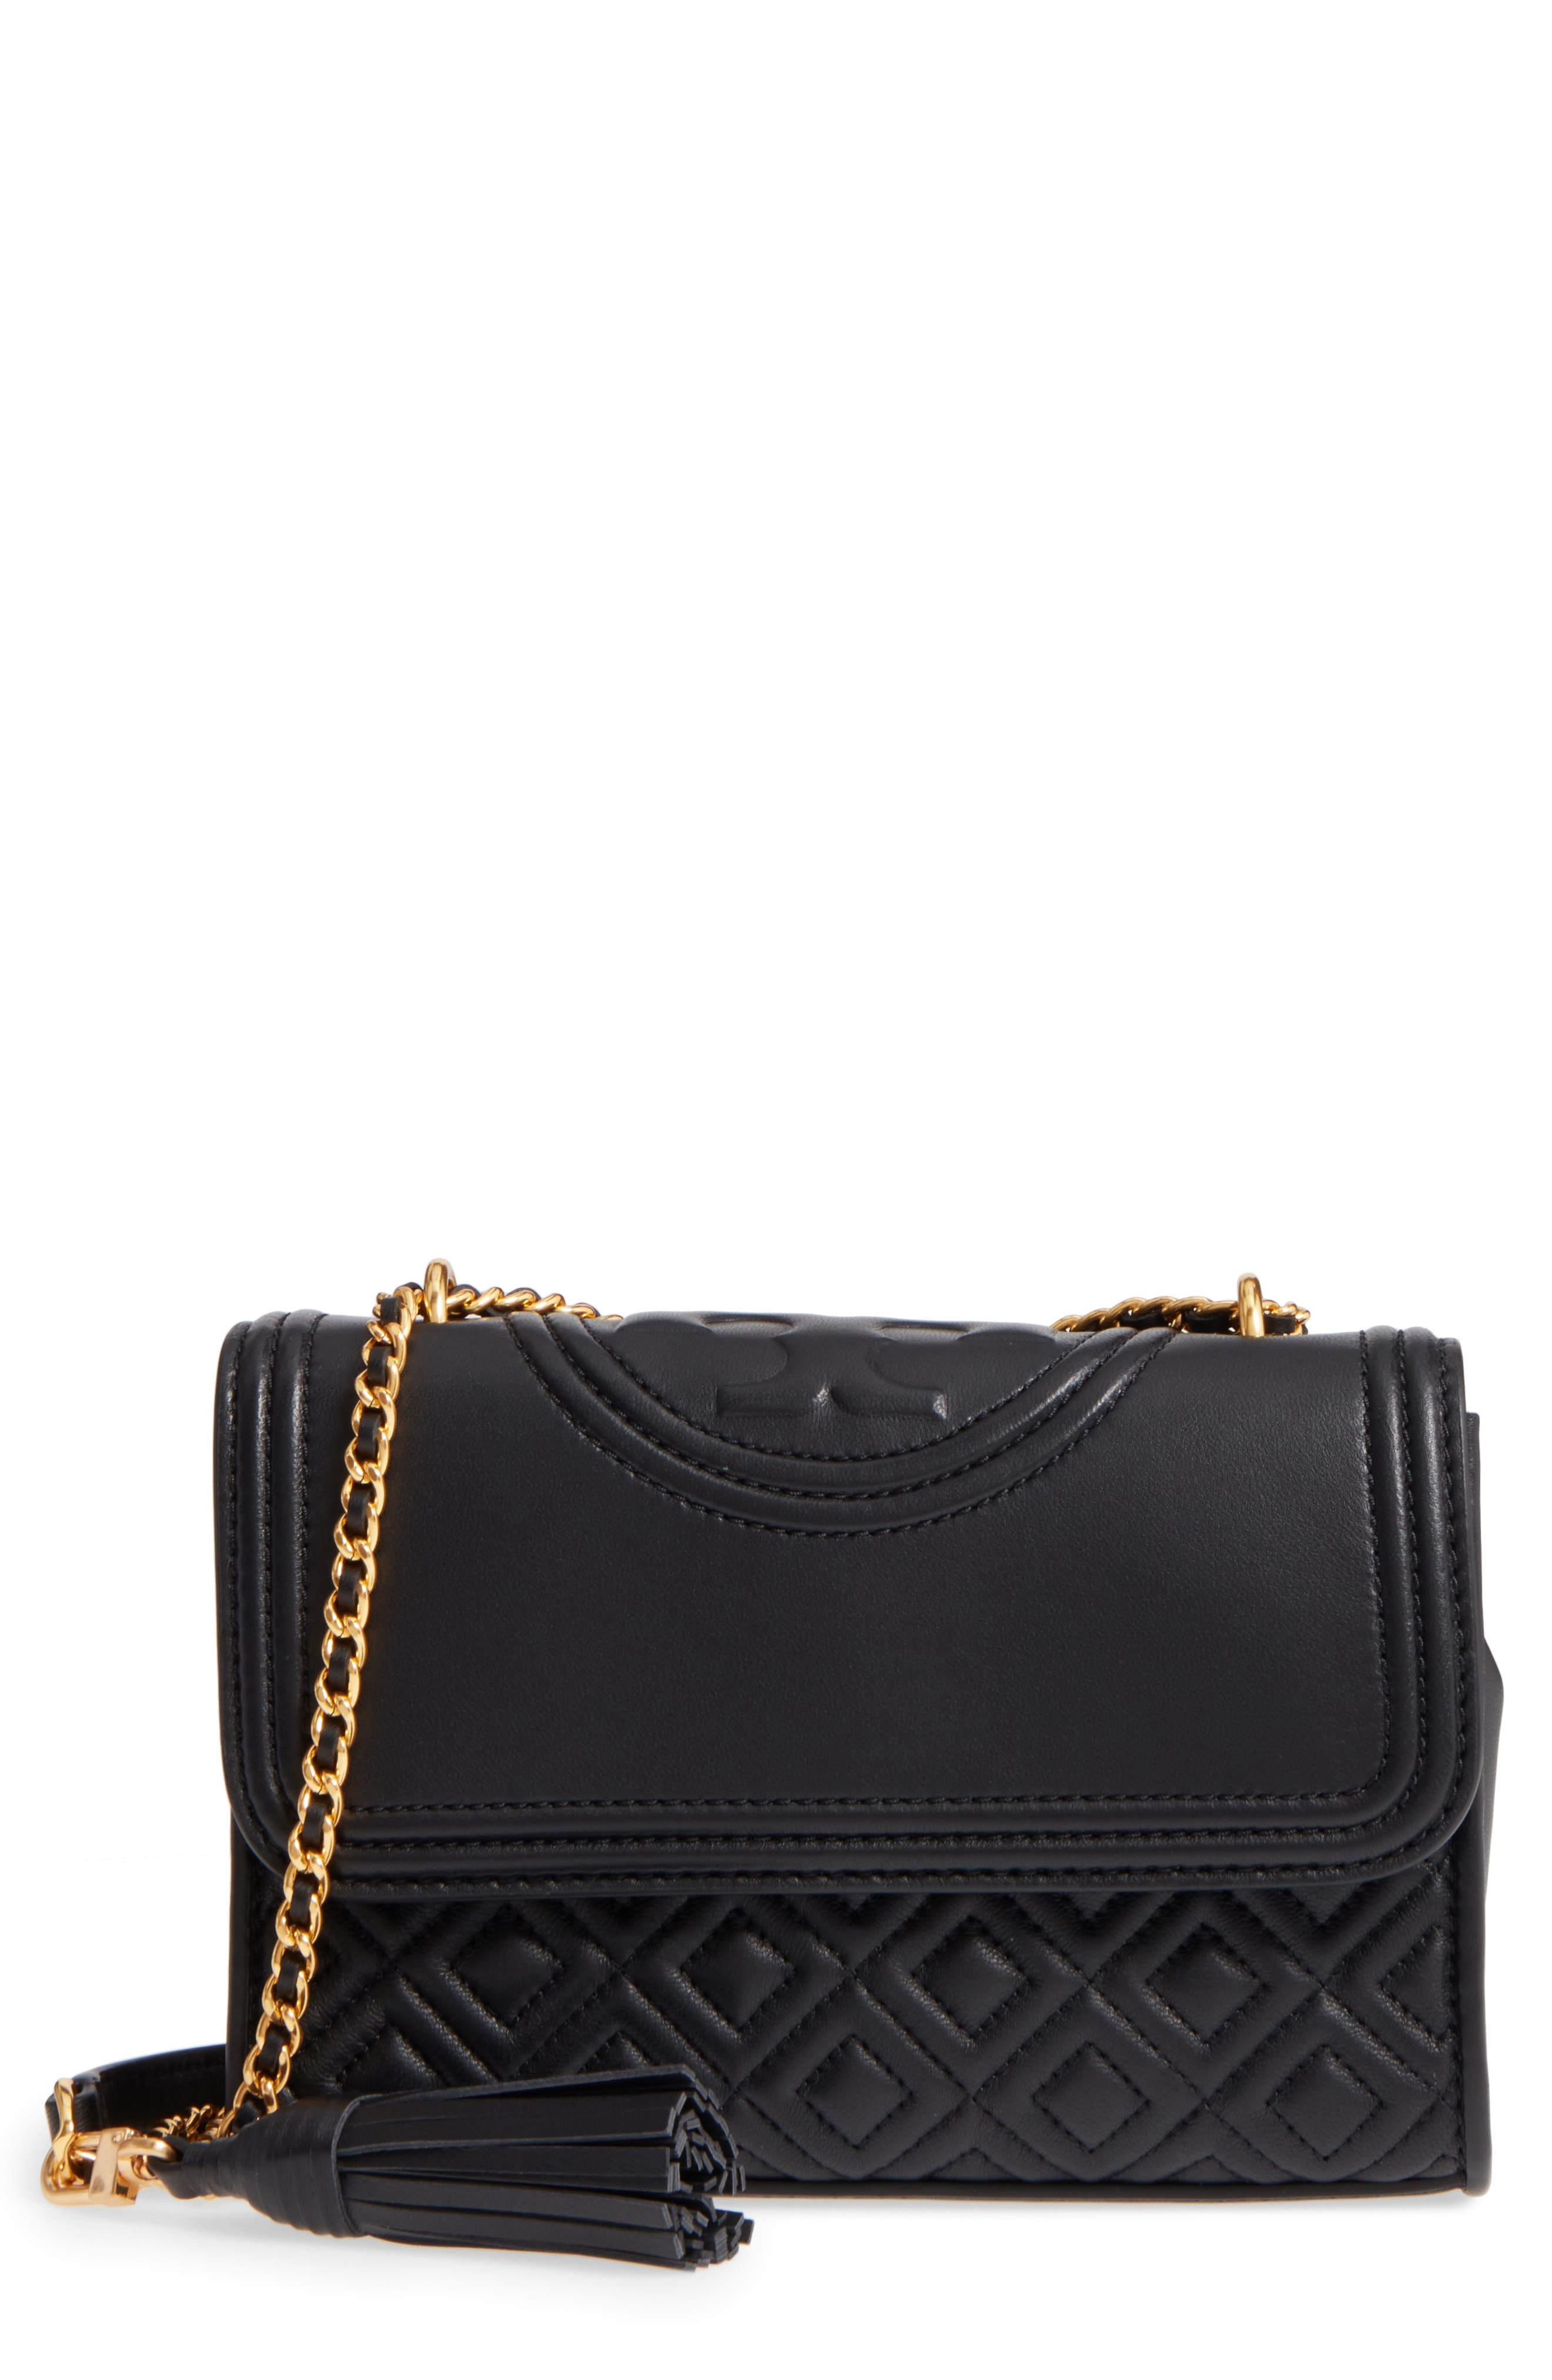 Tory Burch Accessories for Women | Nordstrom